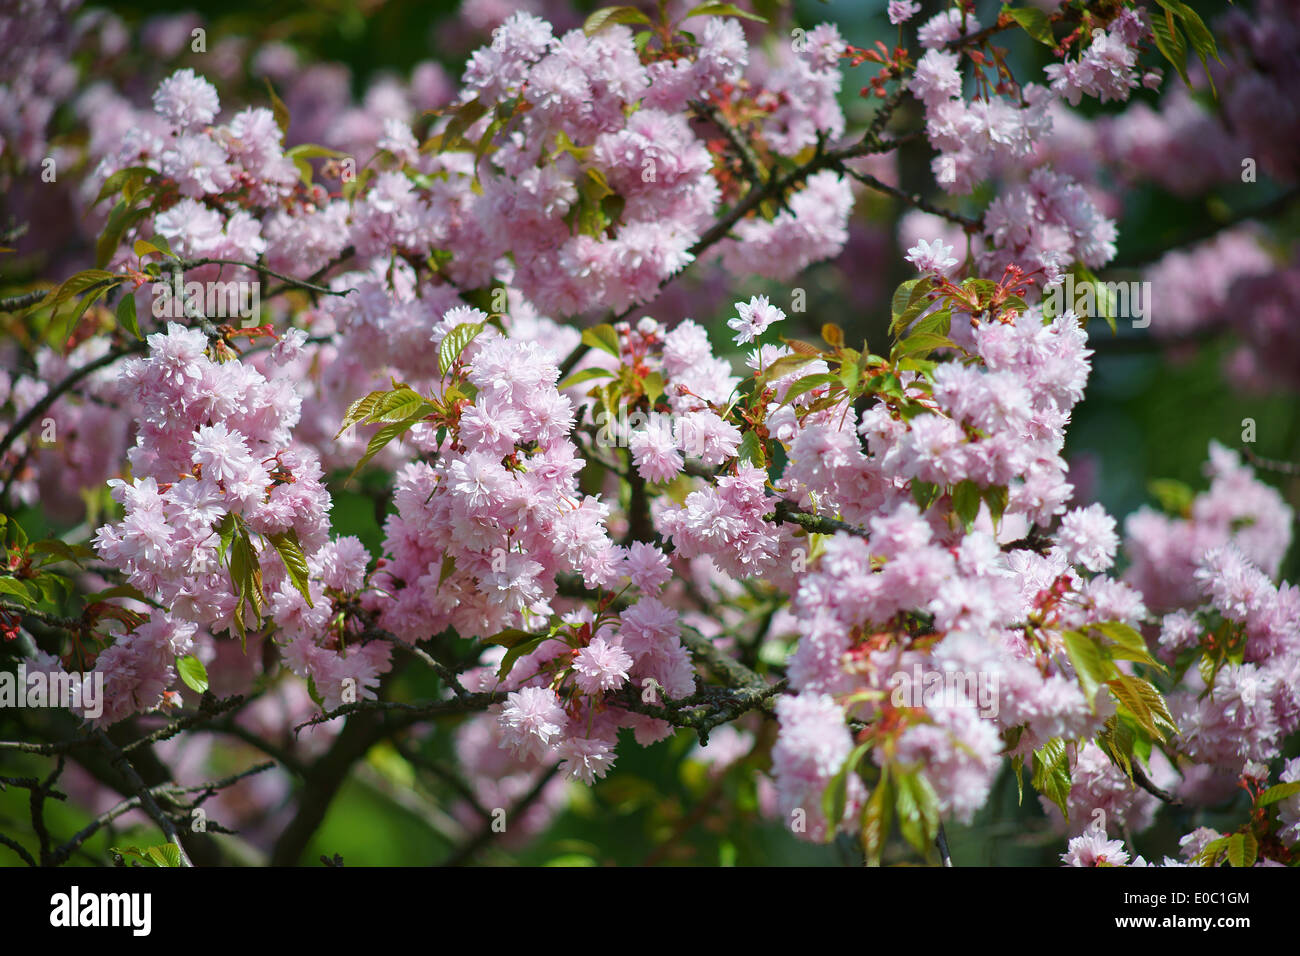 Pink Ornamental Cherry Tree Blossom Stock Photos Pink Ornamental